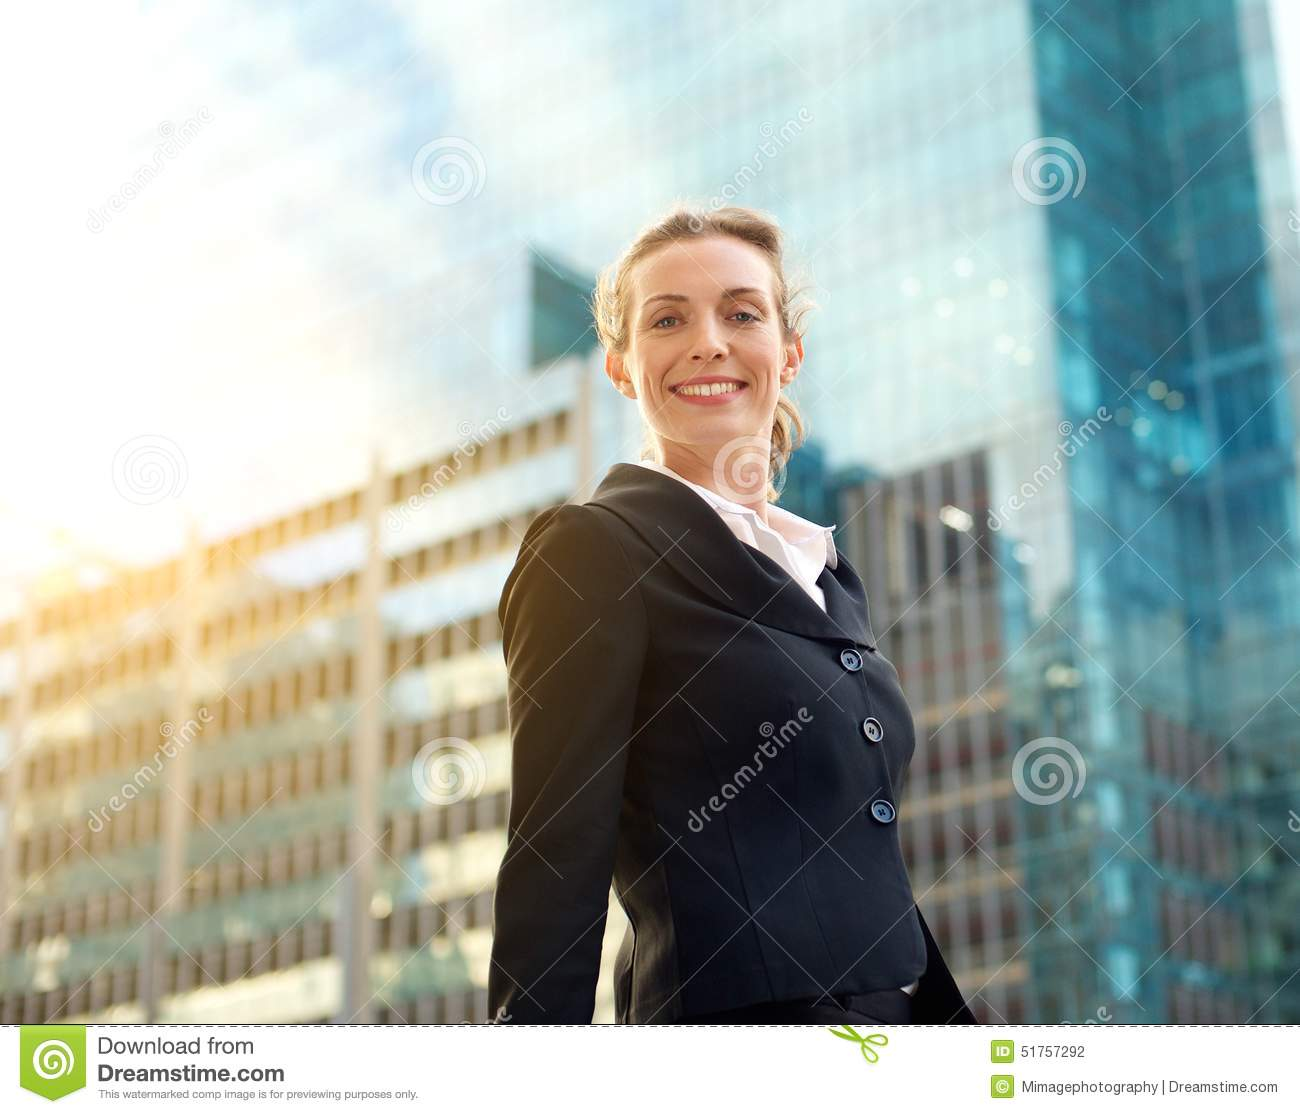 Professional Business Woman Smiling Outside In The City #0: professional business woman smiling outside city portrait buildings background